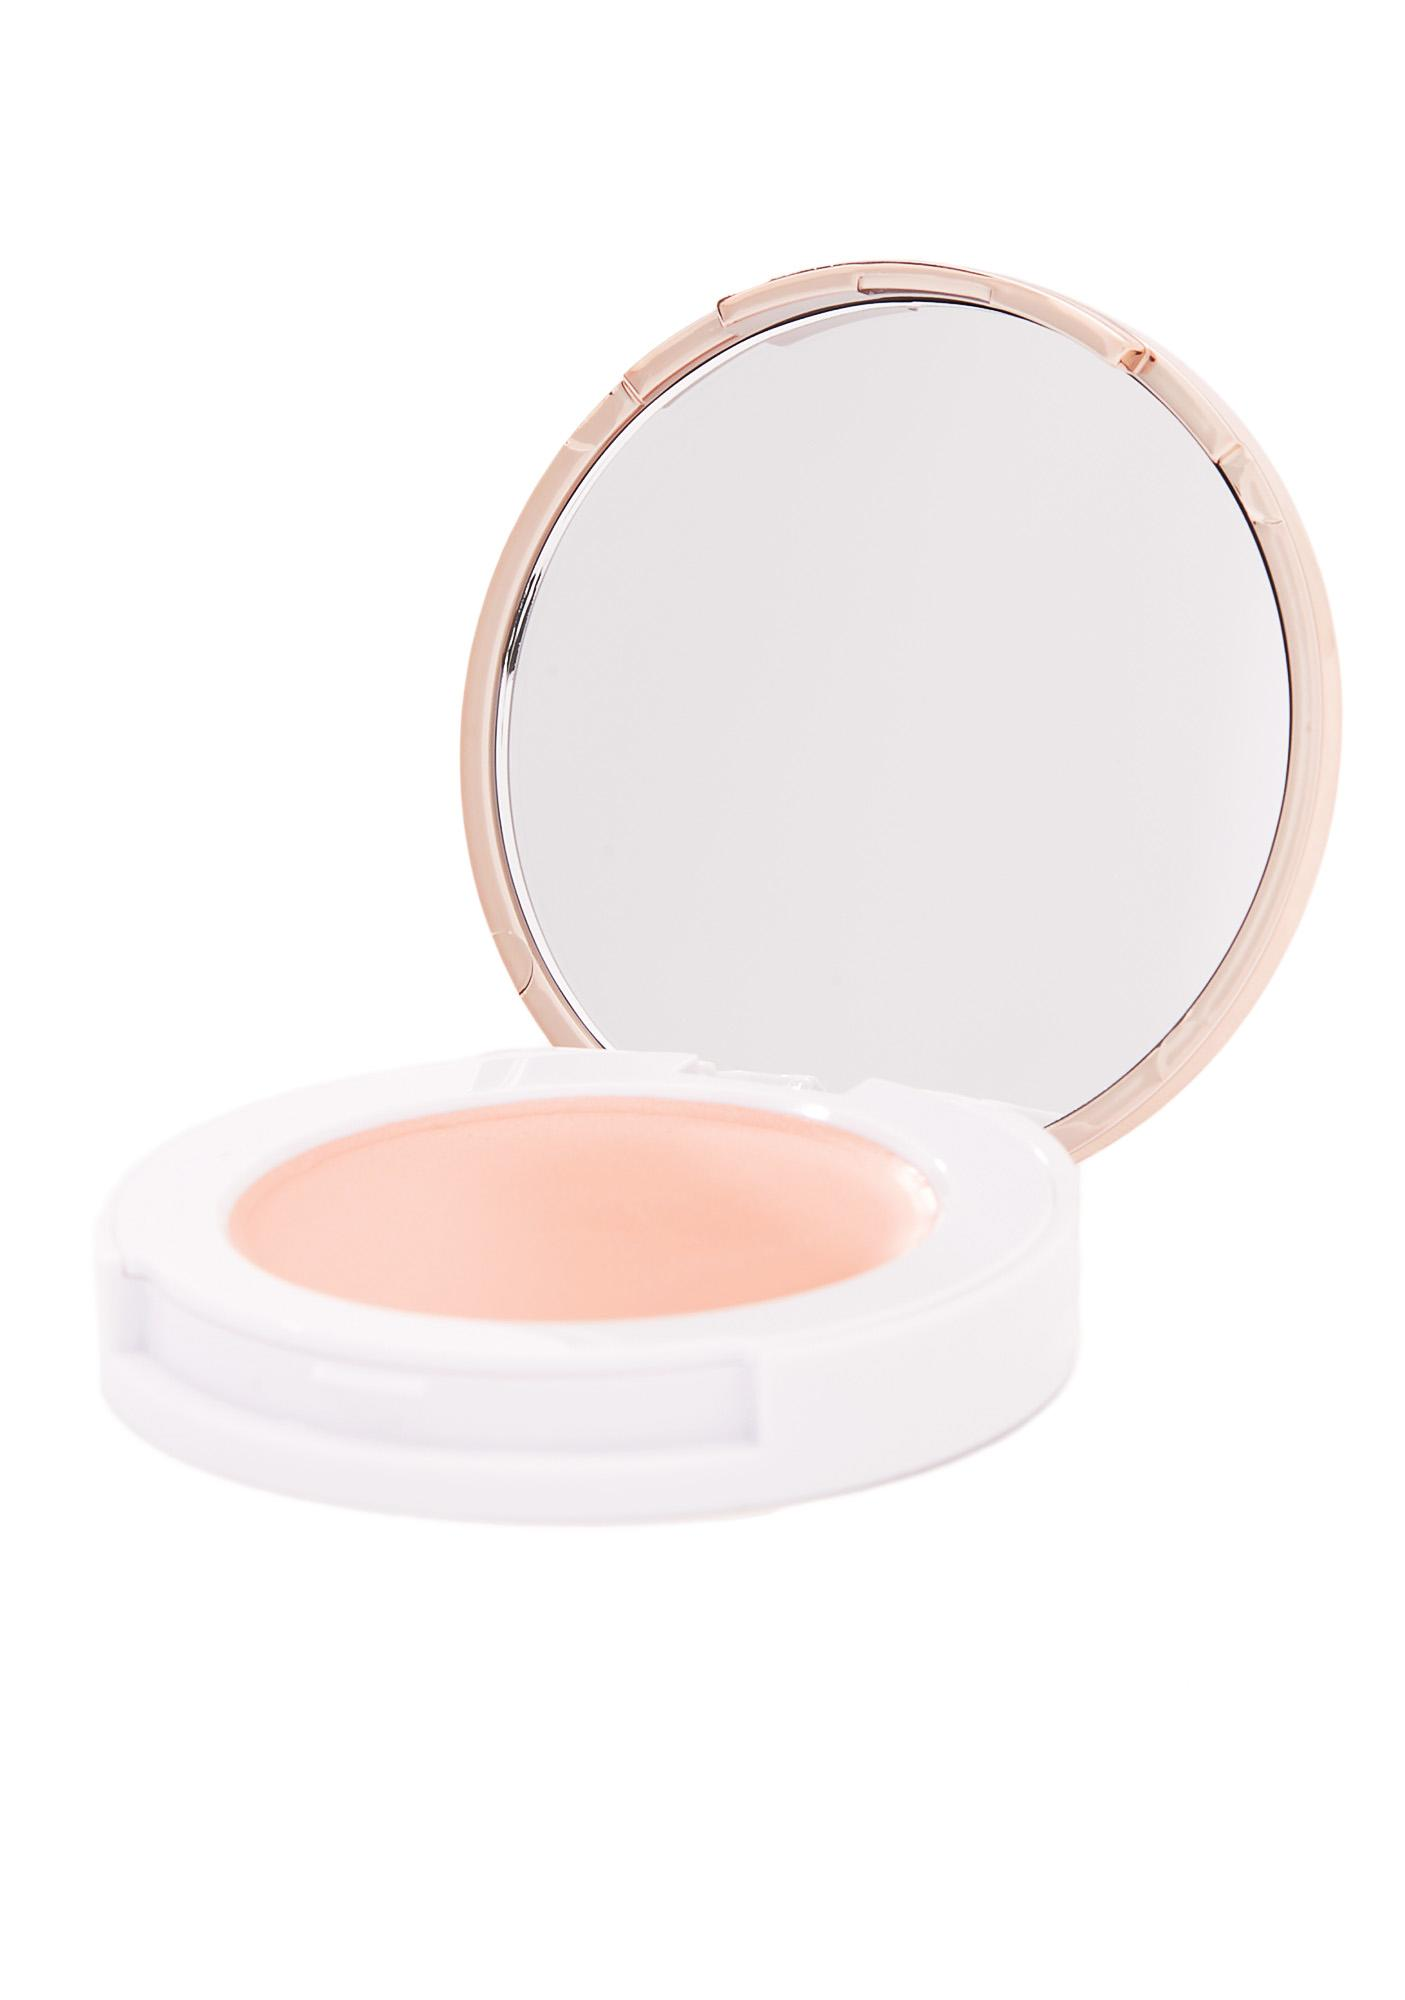 LAQA & Co B'Lighter Blush + Highlighter